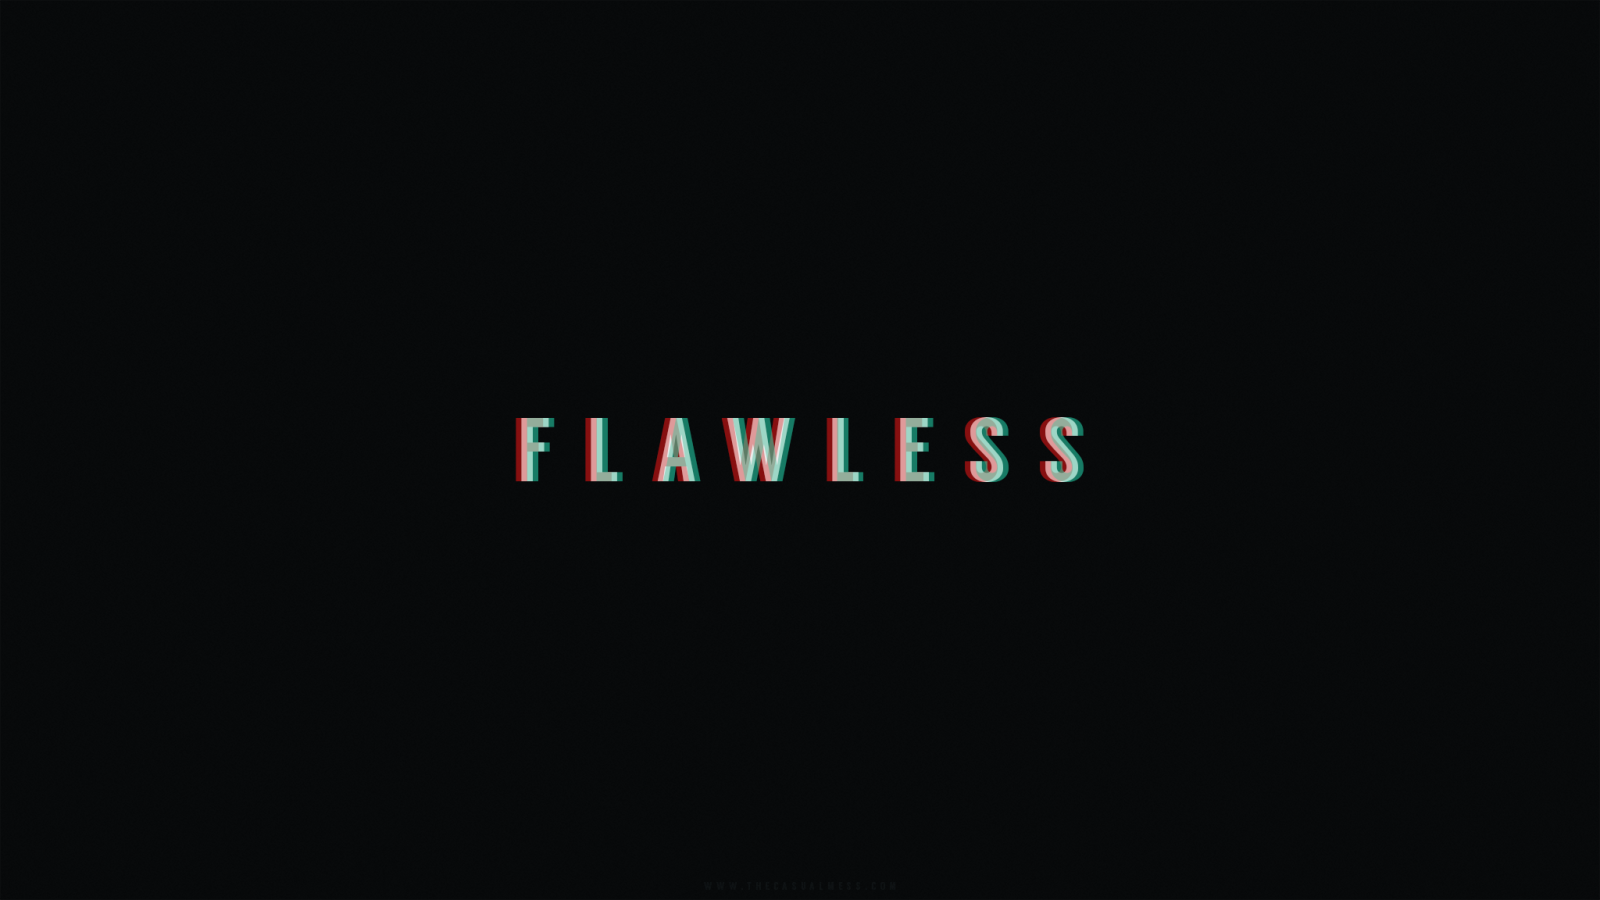 Beyonce 2014 Flawless Wallpaper Photo